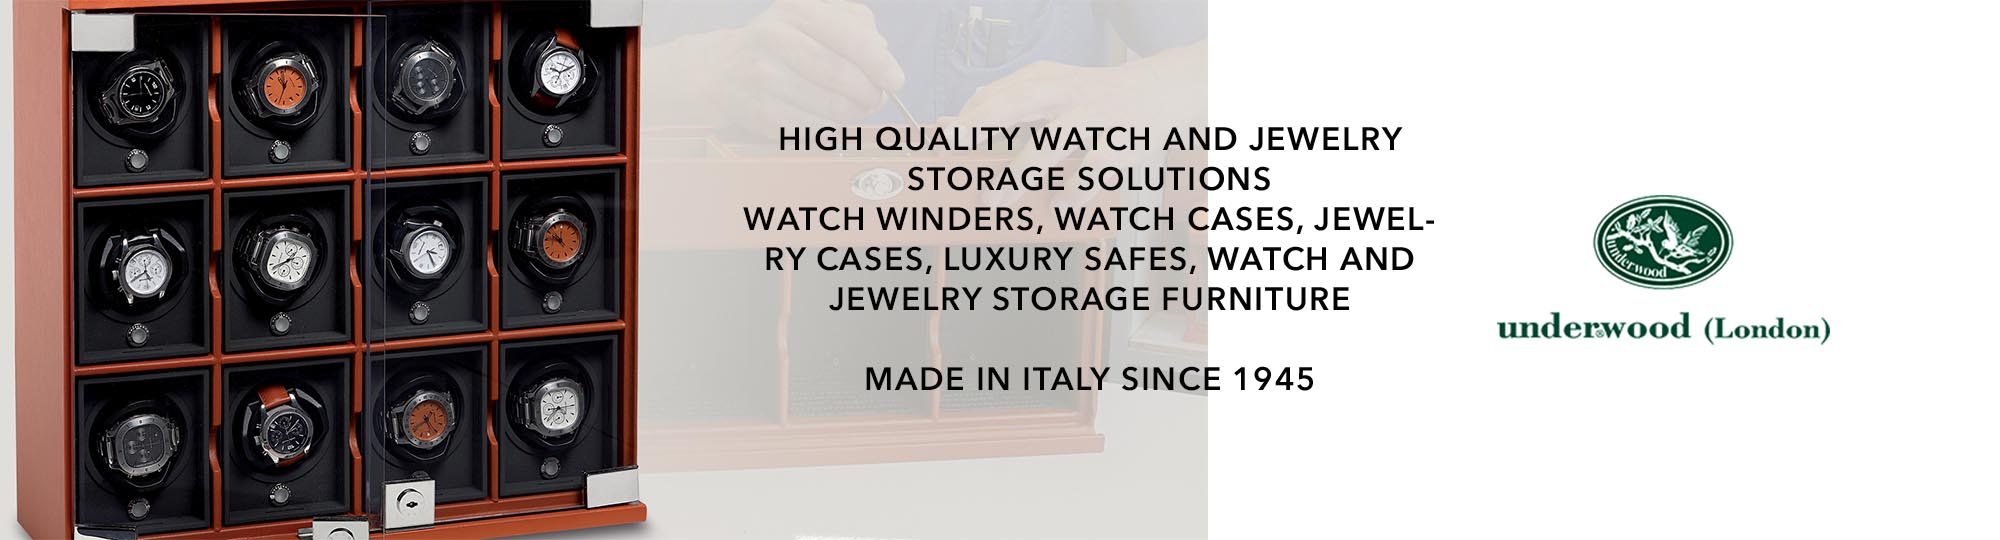 Underwood watch winder available at Manfredi Jewels